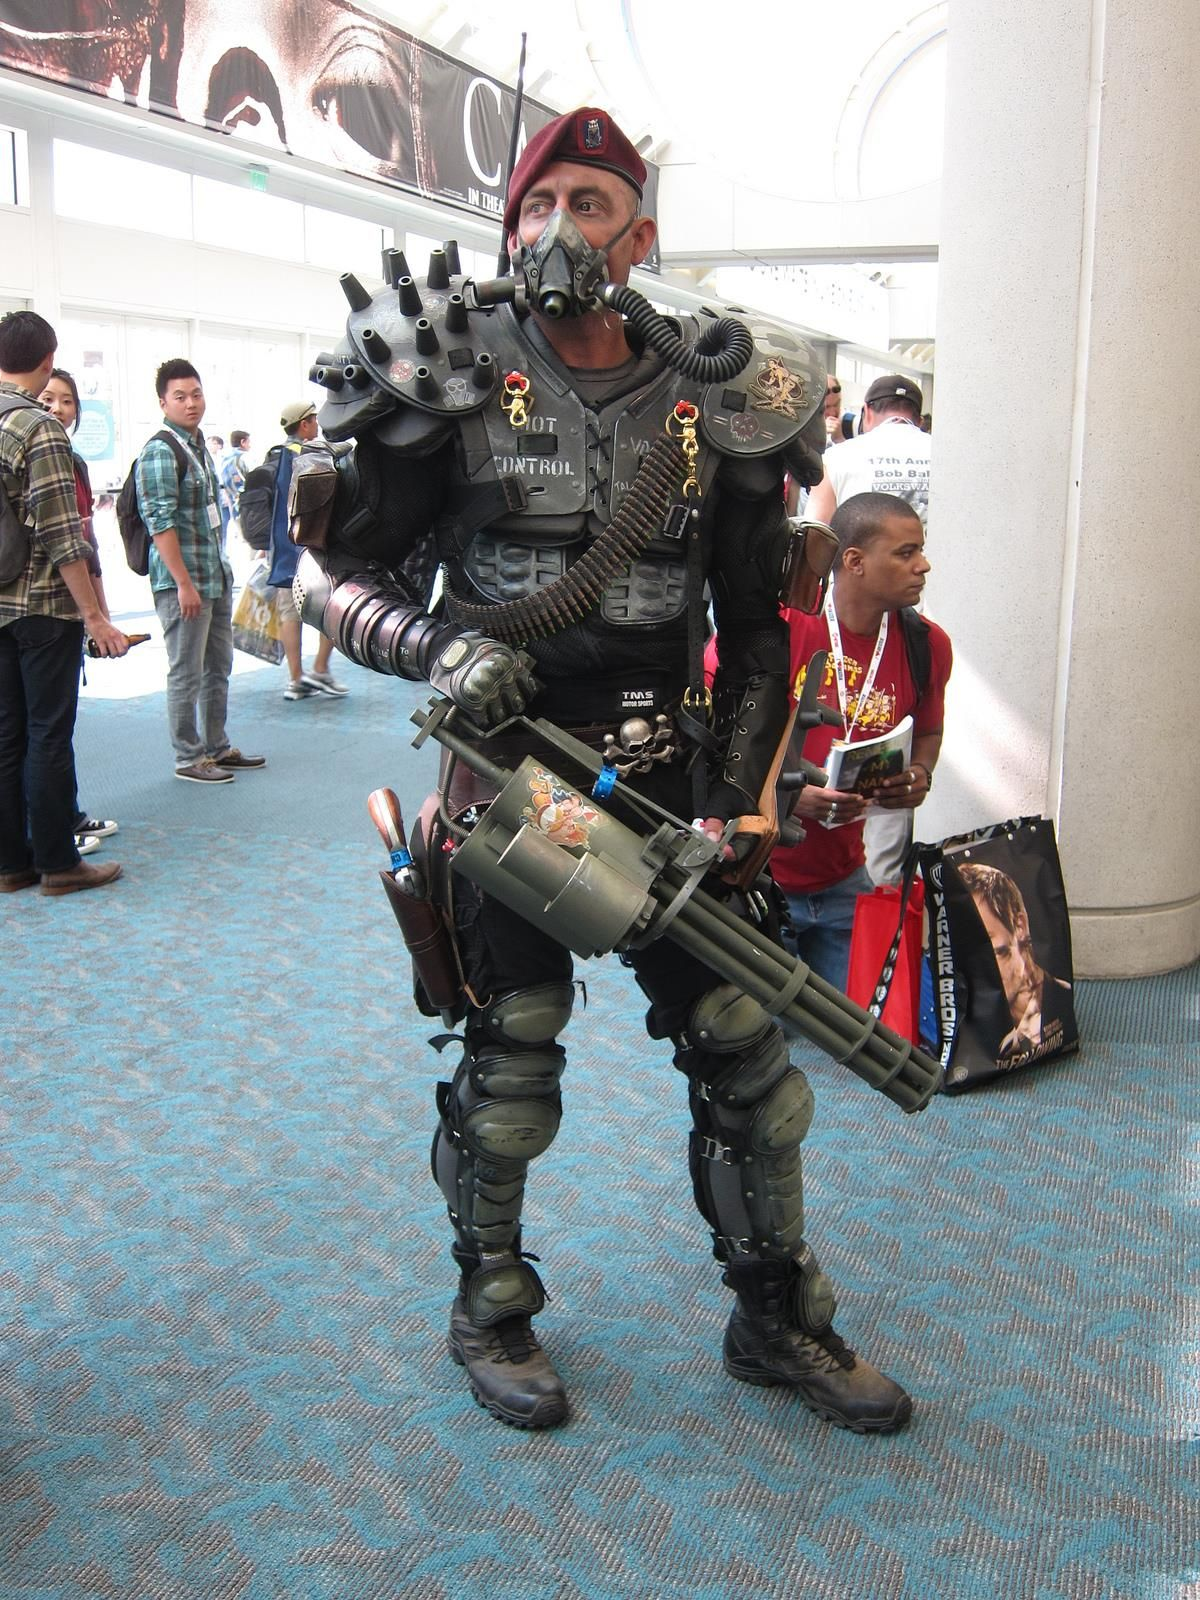 post apocalyptic costumes - Google Search | Post Apocalyptic ...